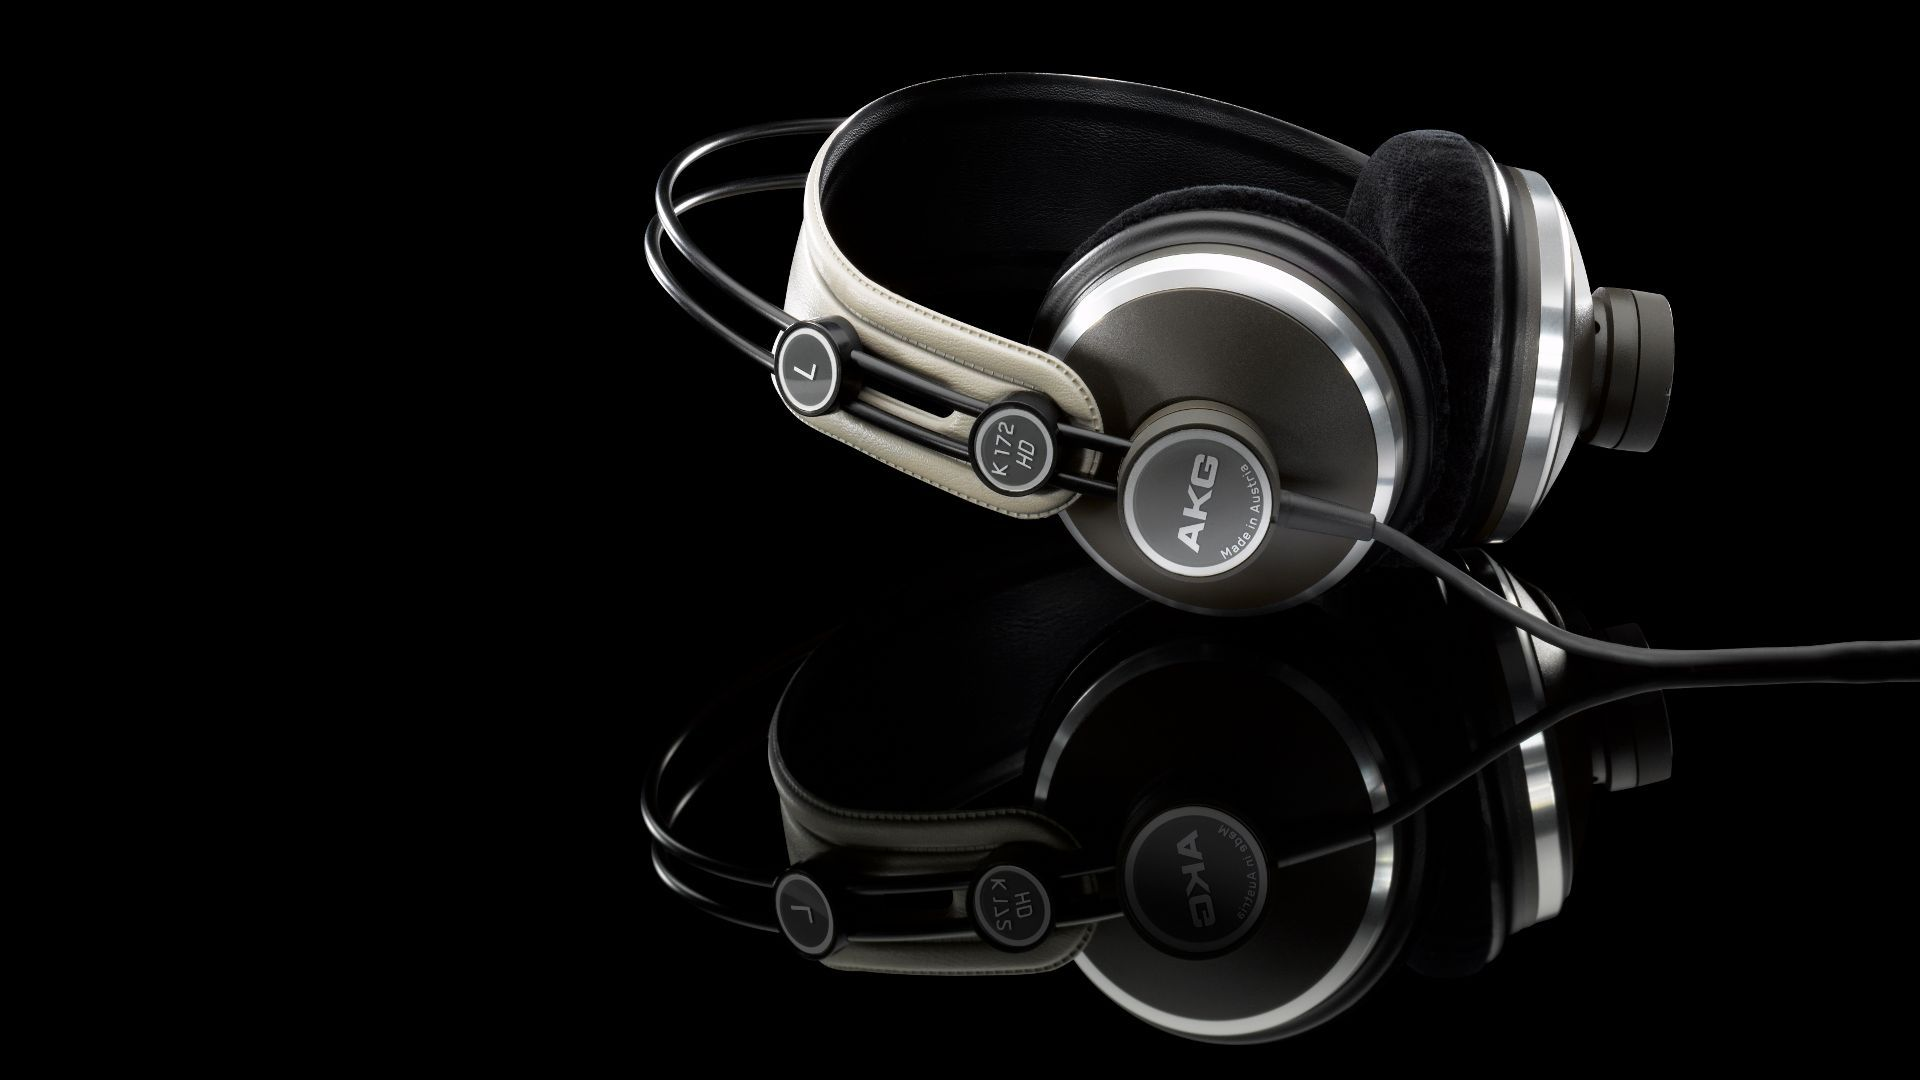 Headphone Hd Monkeycom Wallpaper On Picture Images For